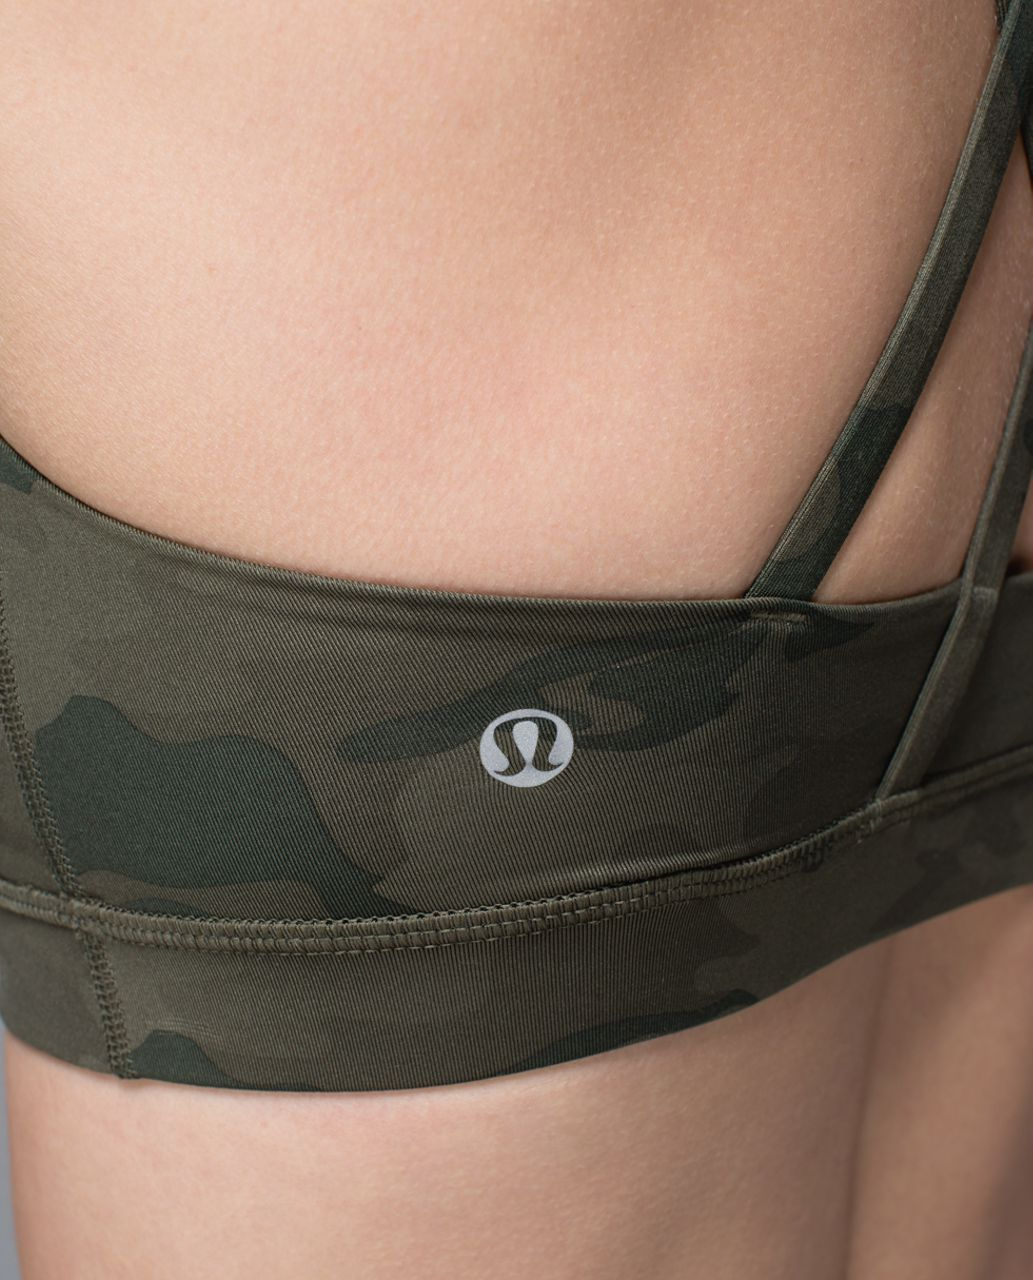 Lululemon Energy Bra - Savasana Camo 20cm Fatigue Green